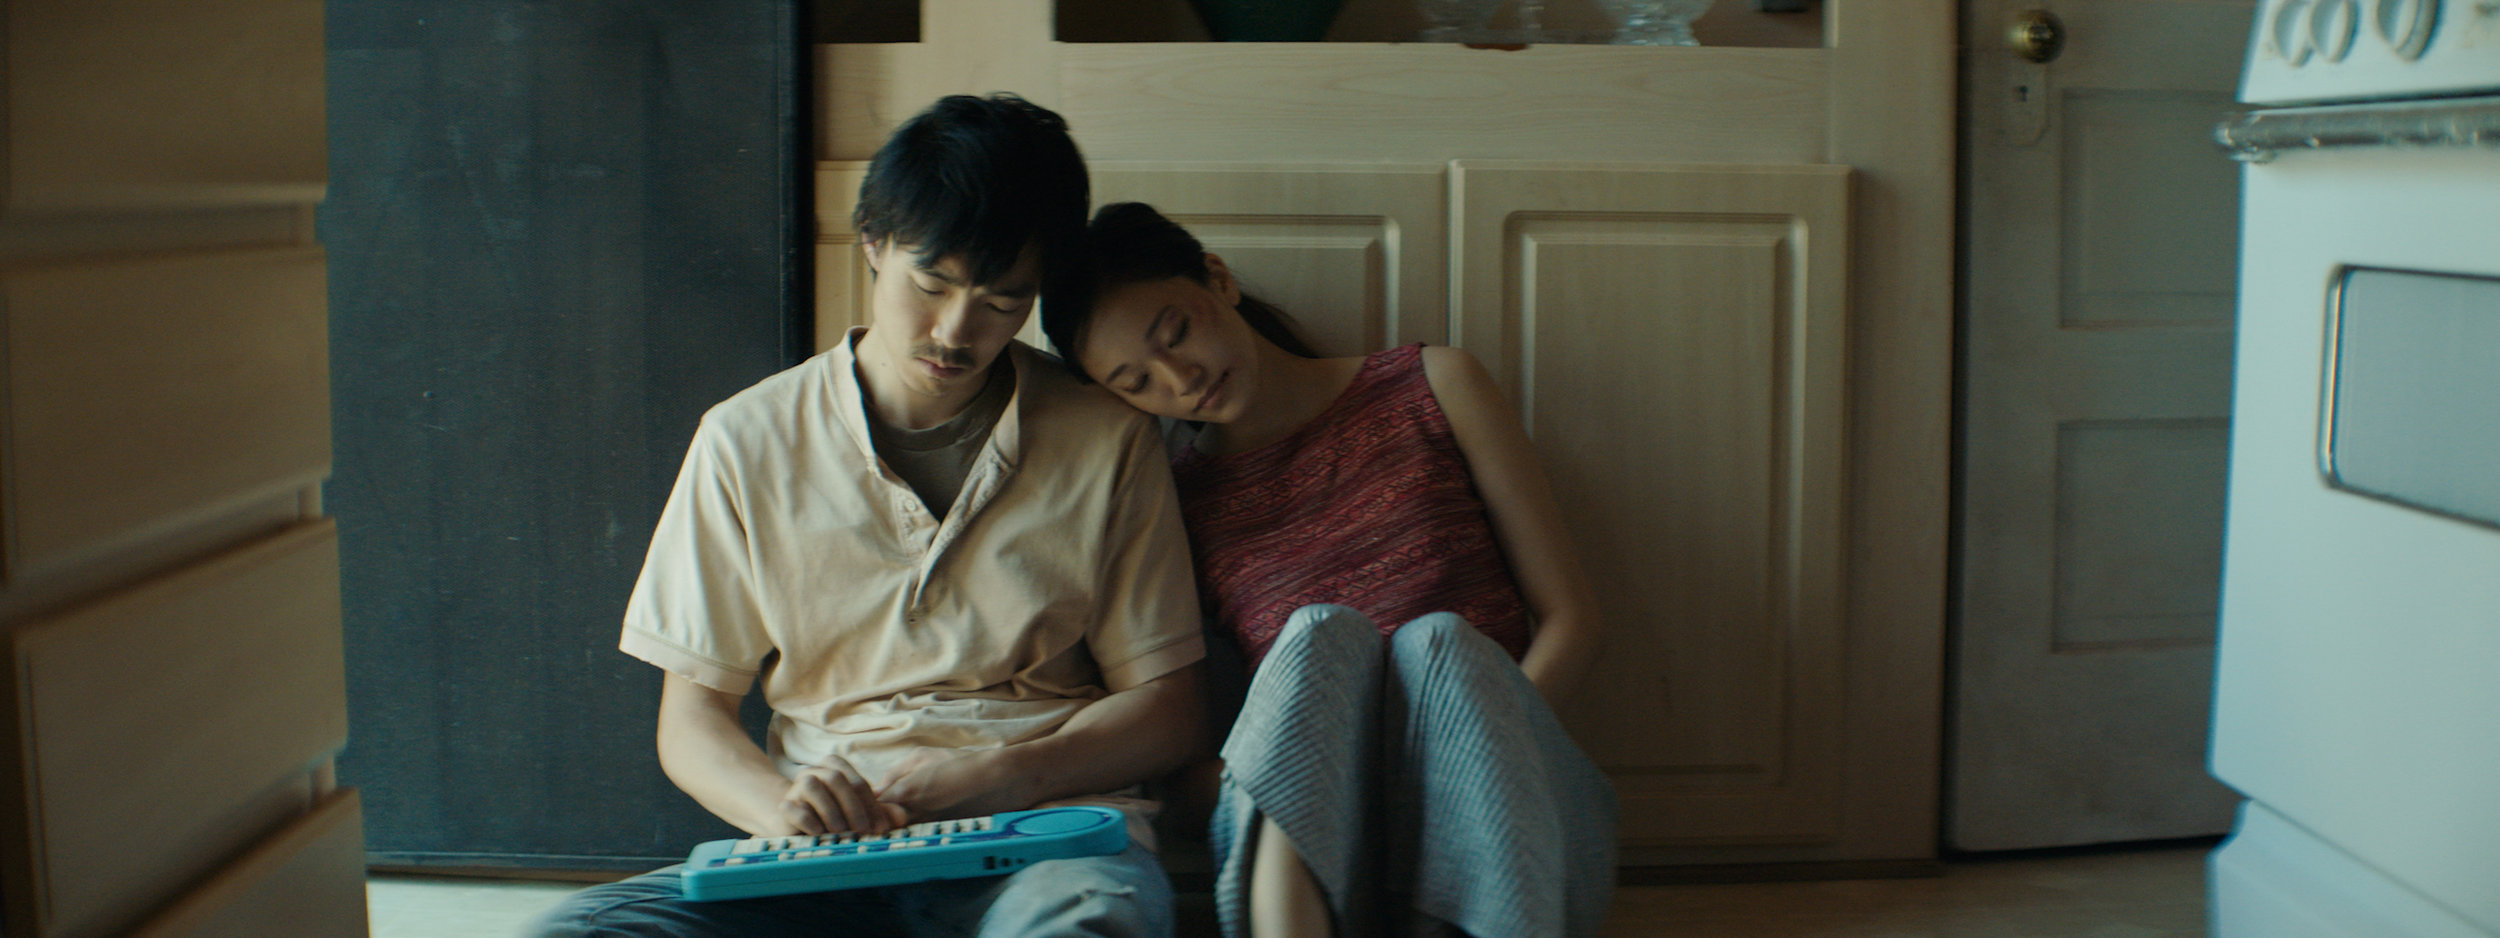 """Siblings (Teddy Lee, left, and Tiffany Chu) reconnect in Justin Chon's """"Ms. Purple,"""" an official selection in the U.S. Dramatic Competition of the 2019 Sundance Film Festival. (Photo by Ante Cheng, courtesy Sundance Institute)"""